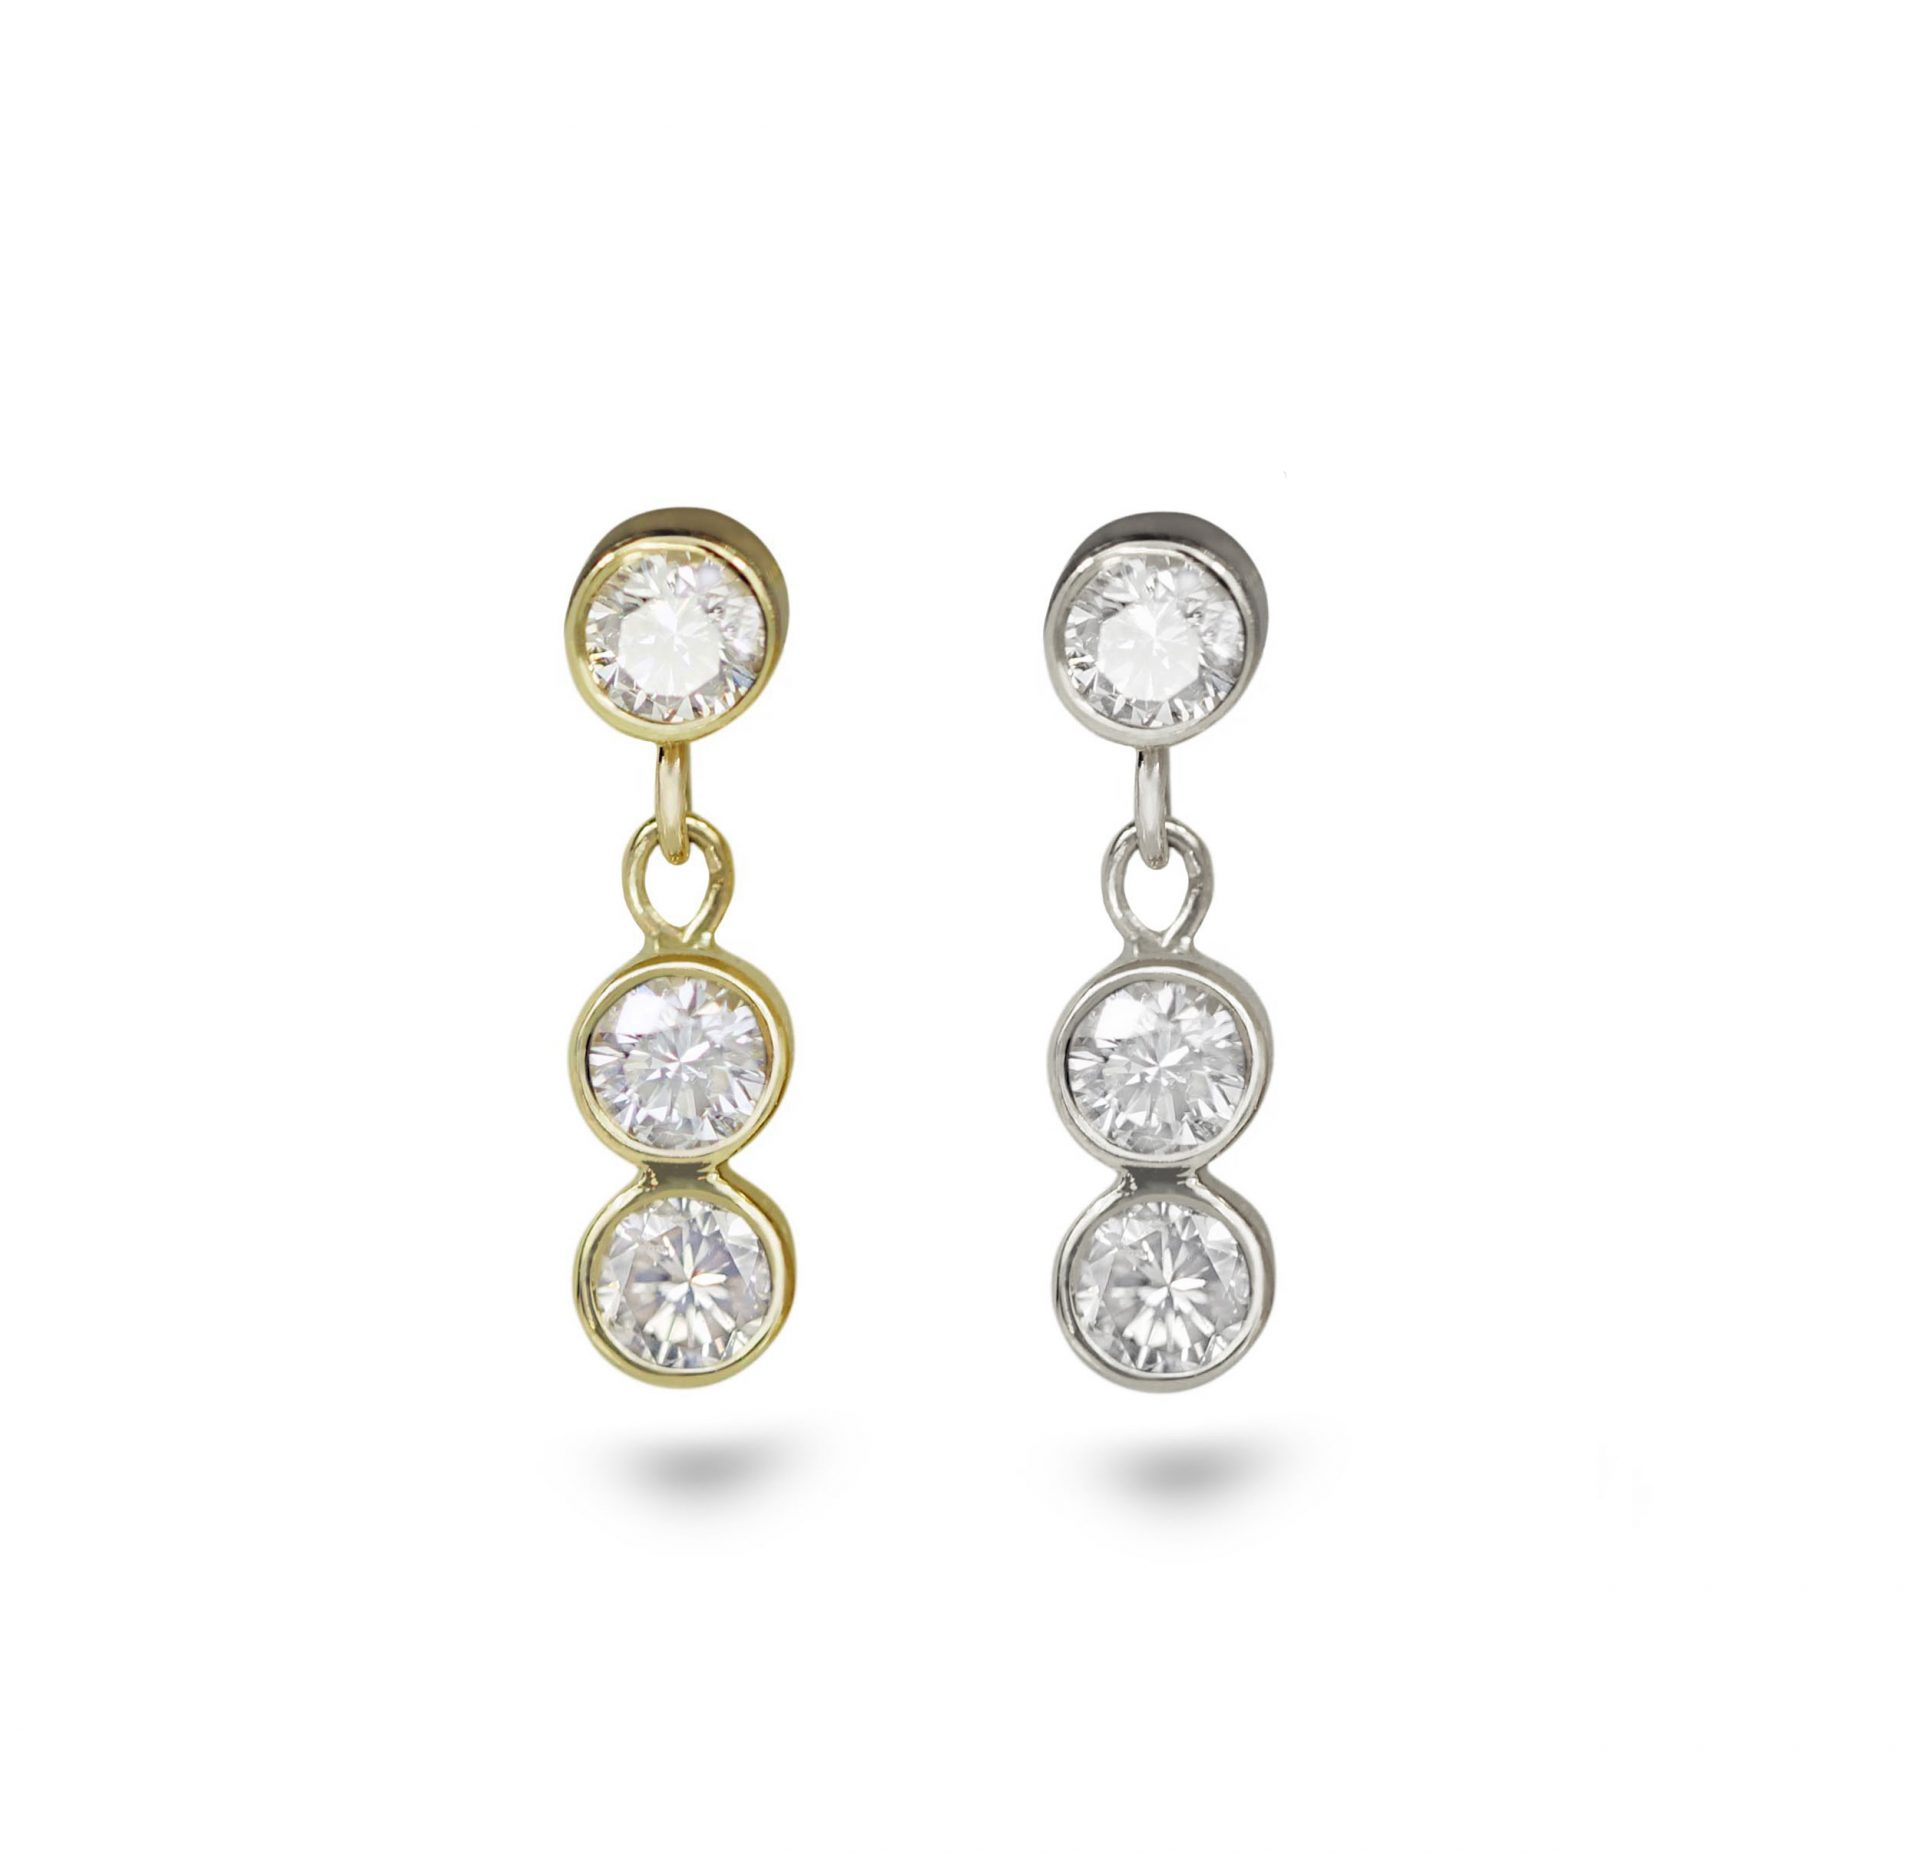 Diamond-dangle-threaded-stud-18k-yellow-gold-cartilage-piercing-earring-handmade